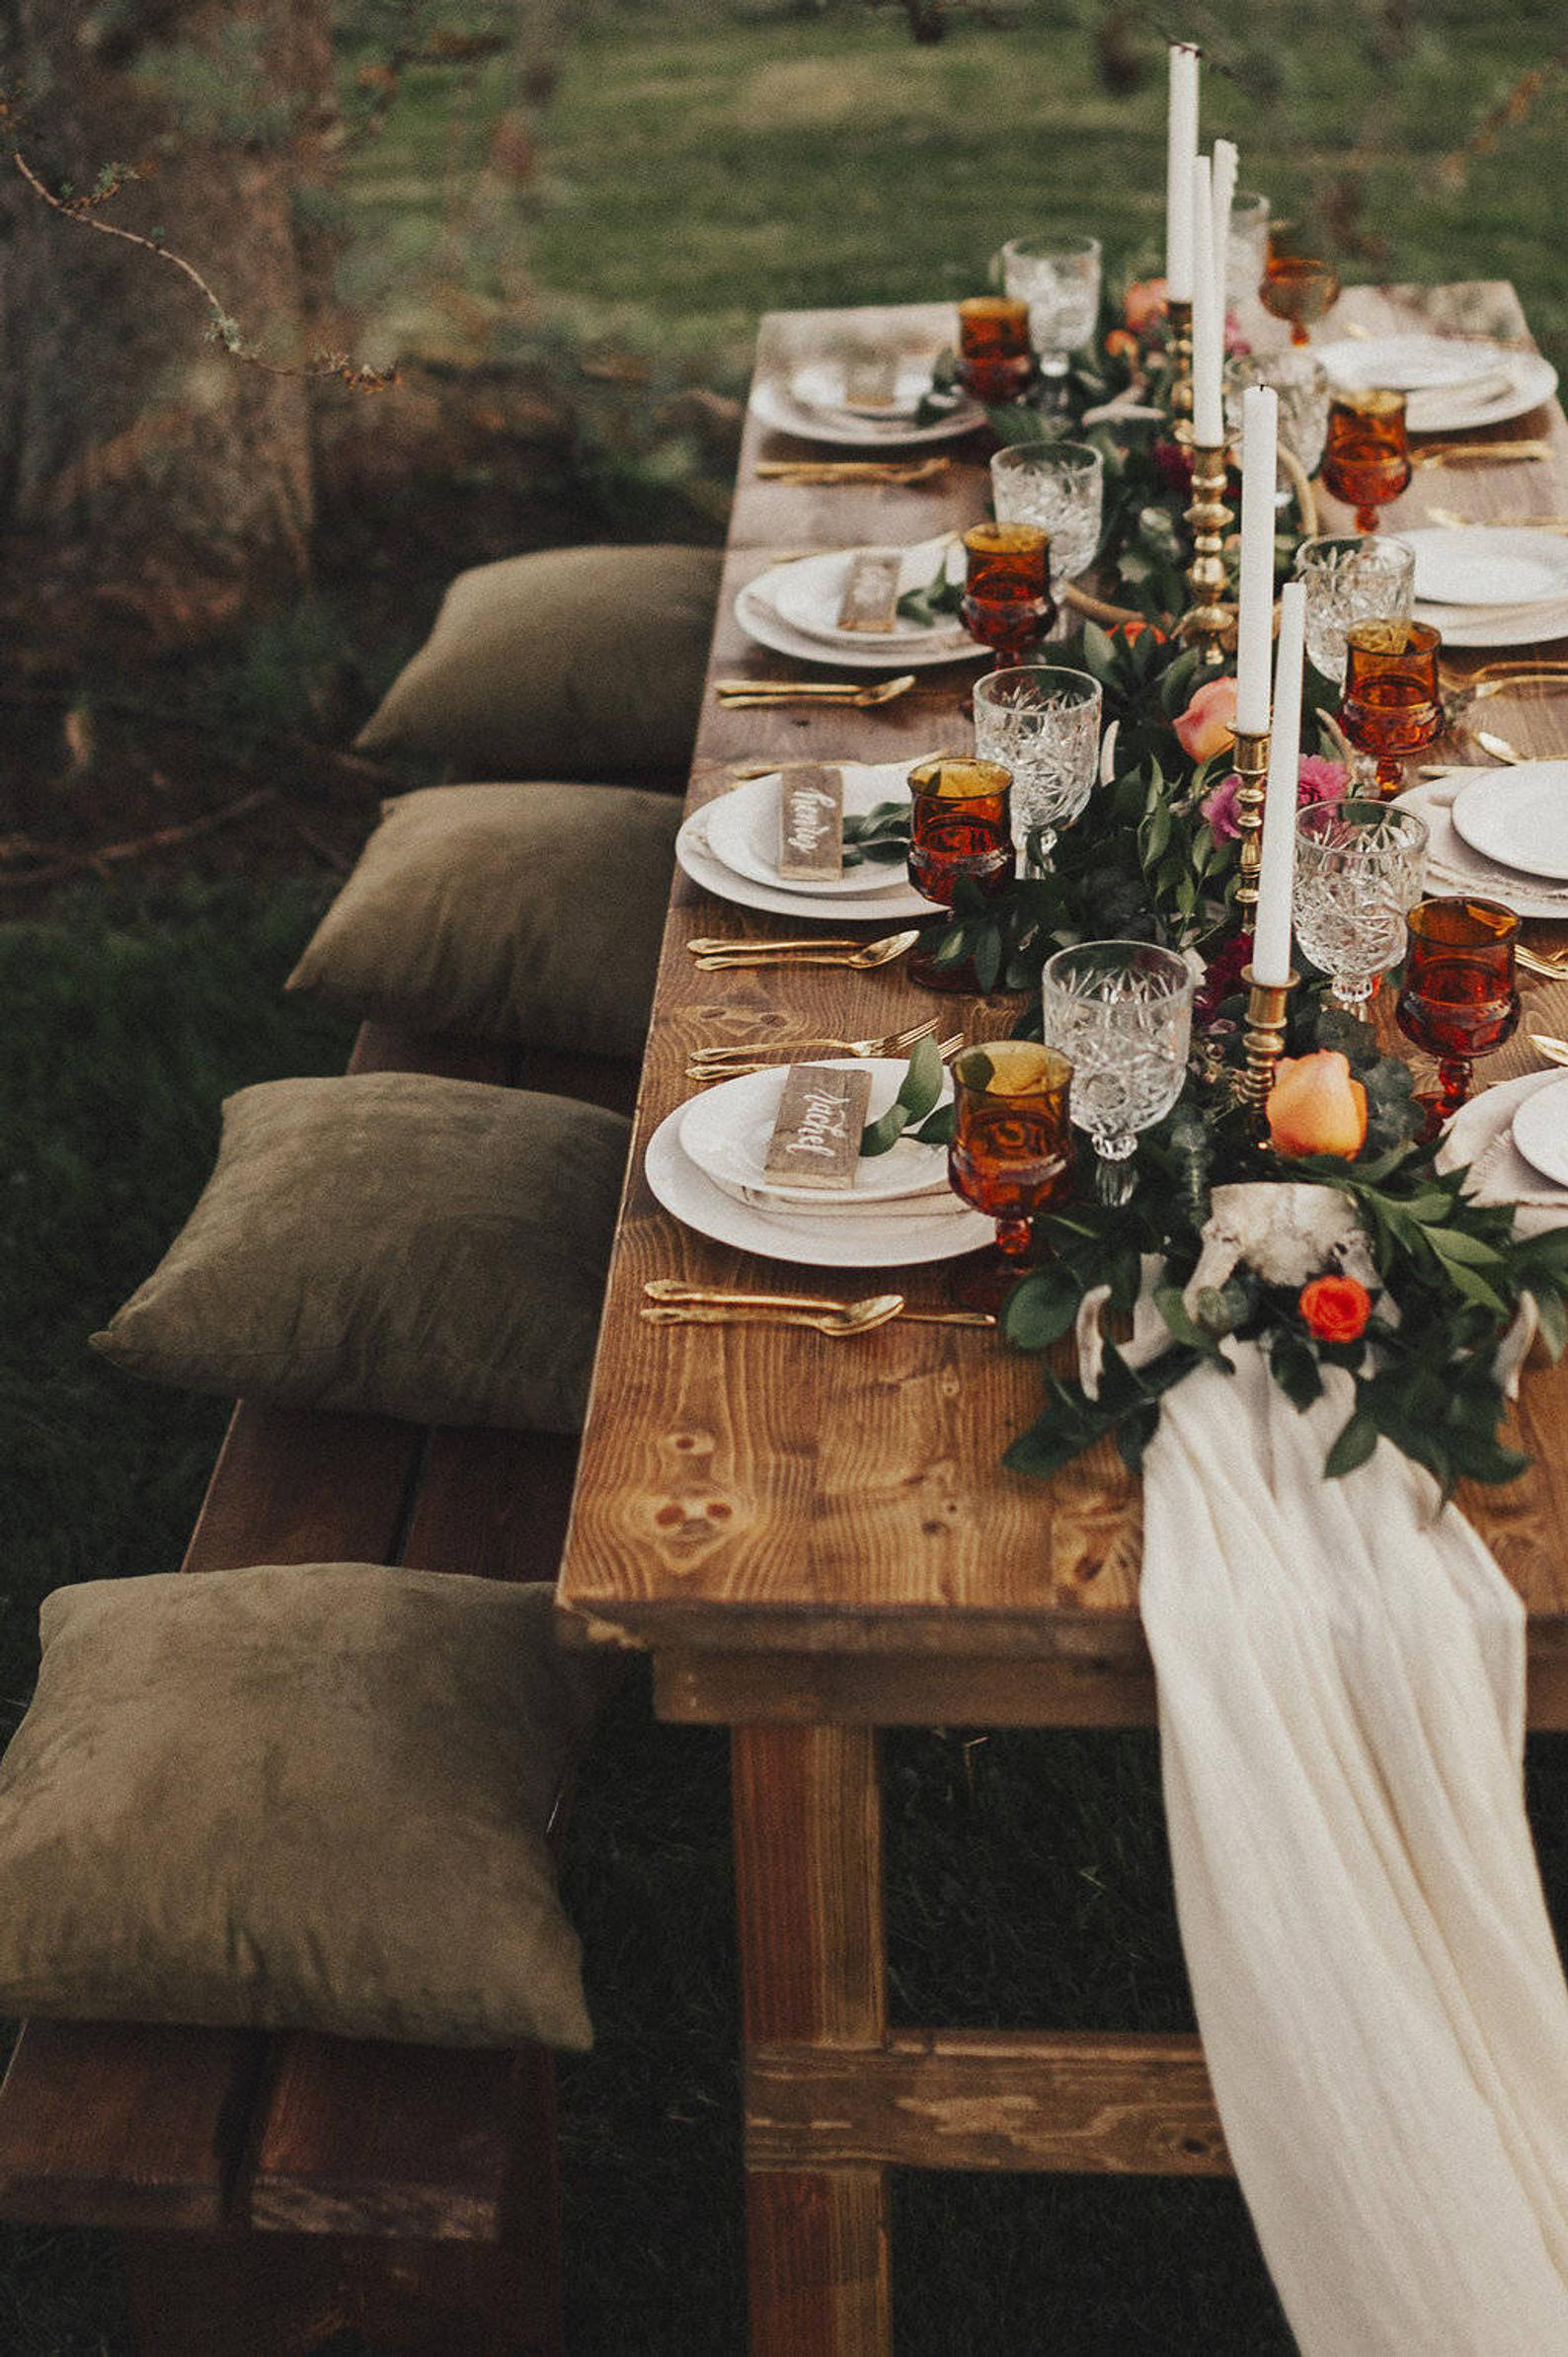 40 Astonishing Country Wedding Ideas That Are In Trend - Molitsy Blog